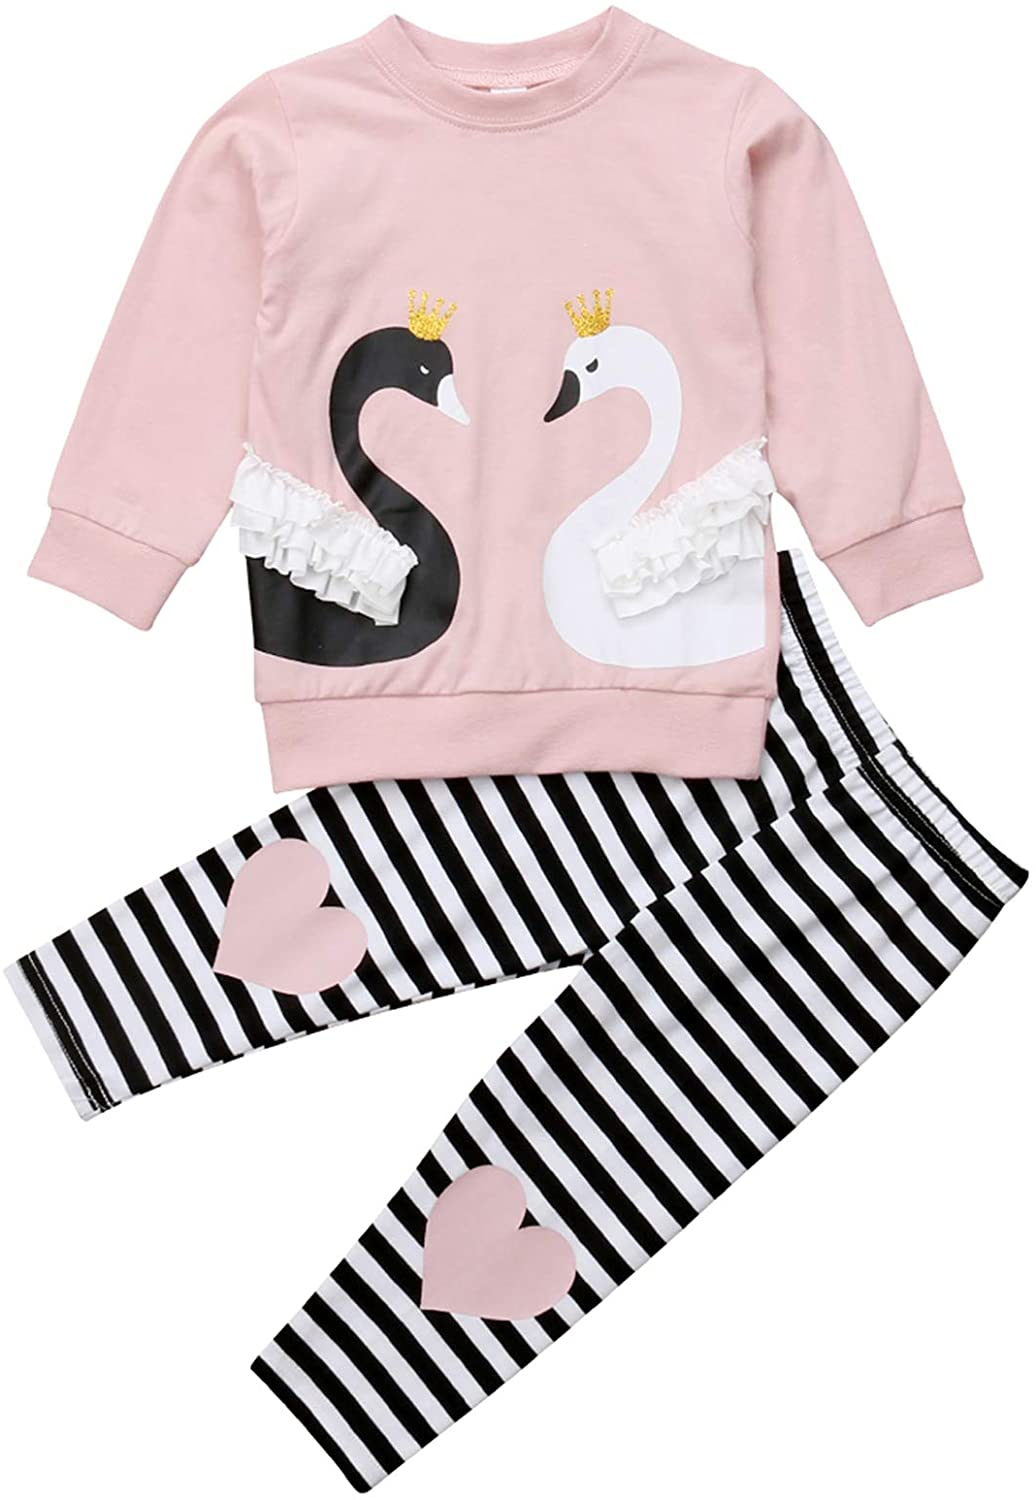 Urkutoba Long Sleeve Twain Swan Pattern Pullover Sweartshirt+Black&White Stripe Long Legging Pants Baby Girl 2pcs Outfit